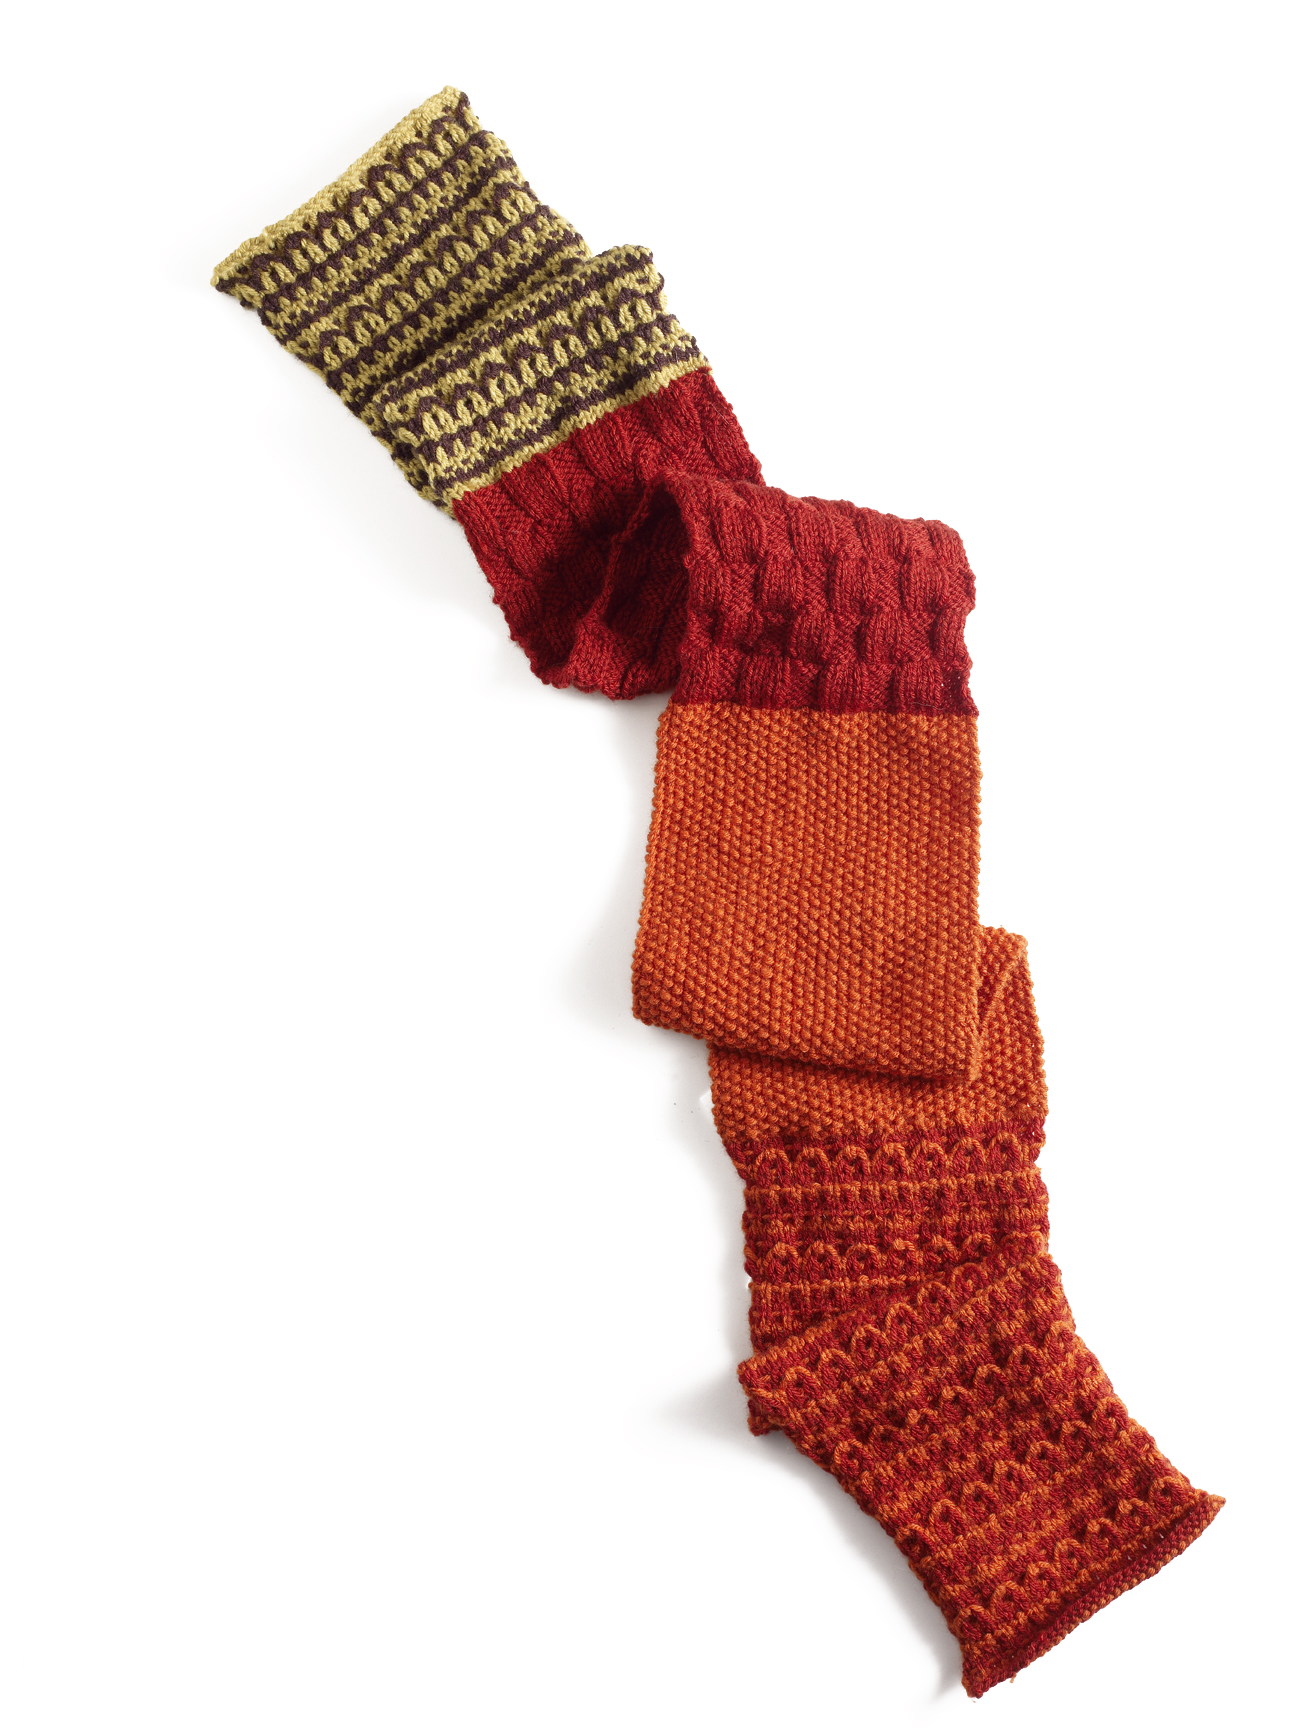 Join the Knitting Daily TV Knit-along for the Fallen Leaves Scarf ...